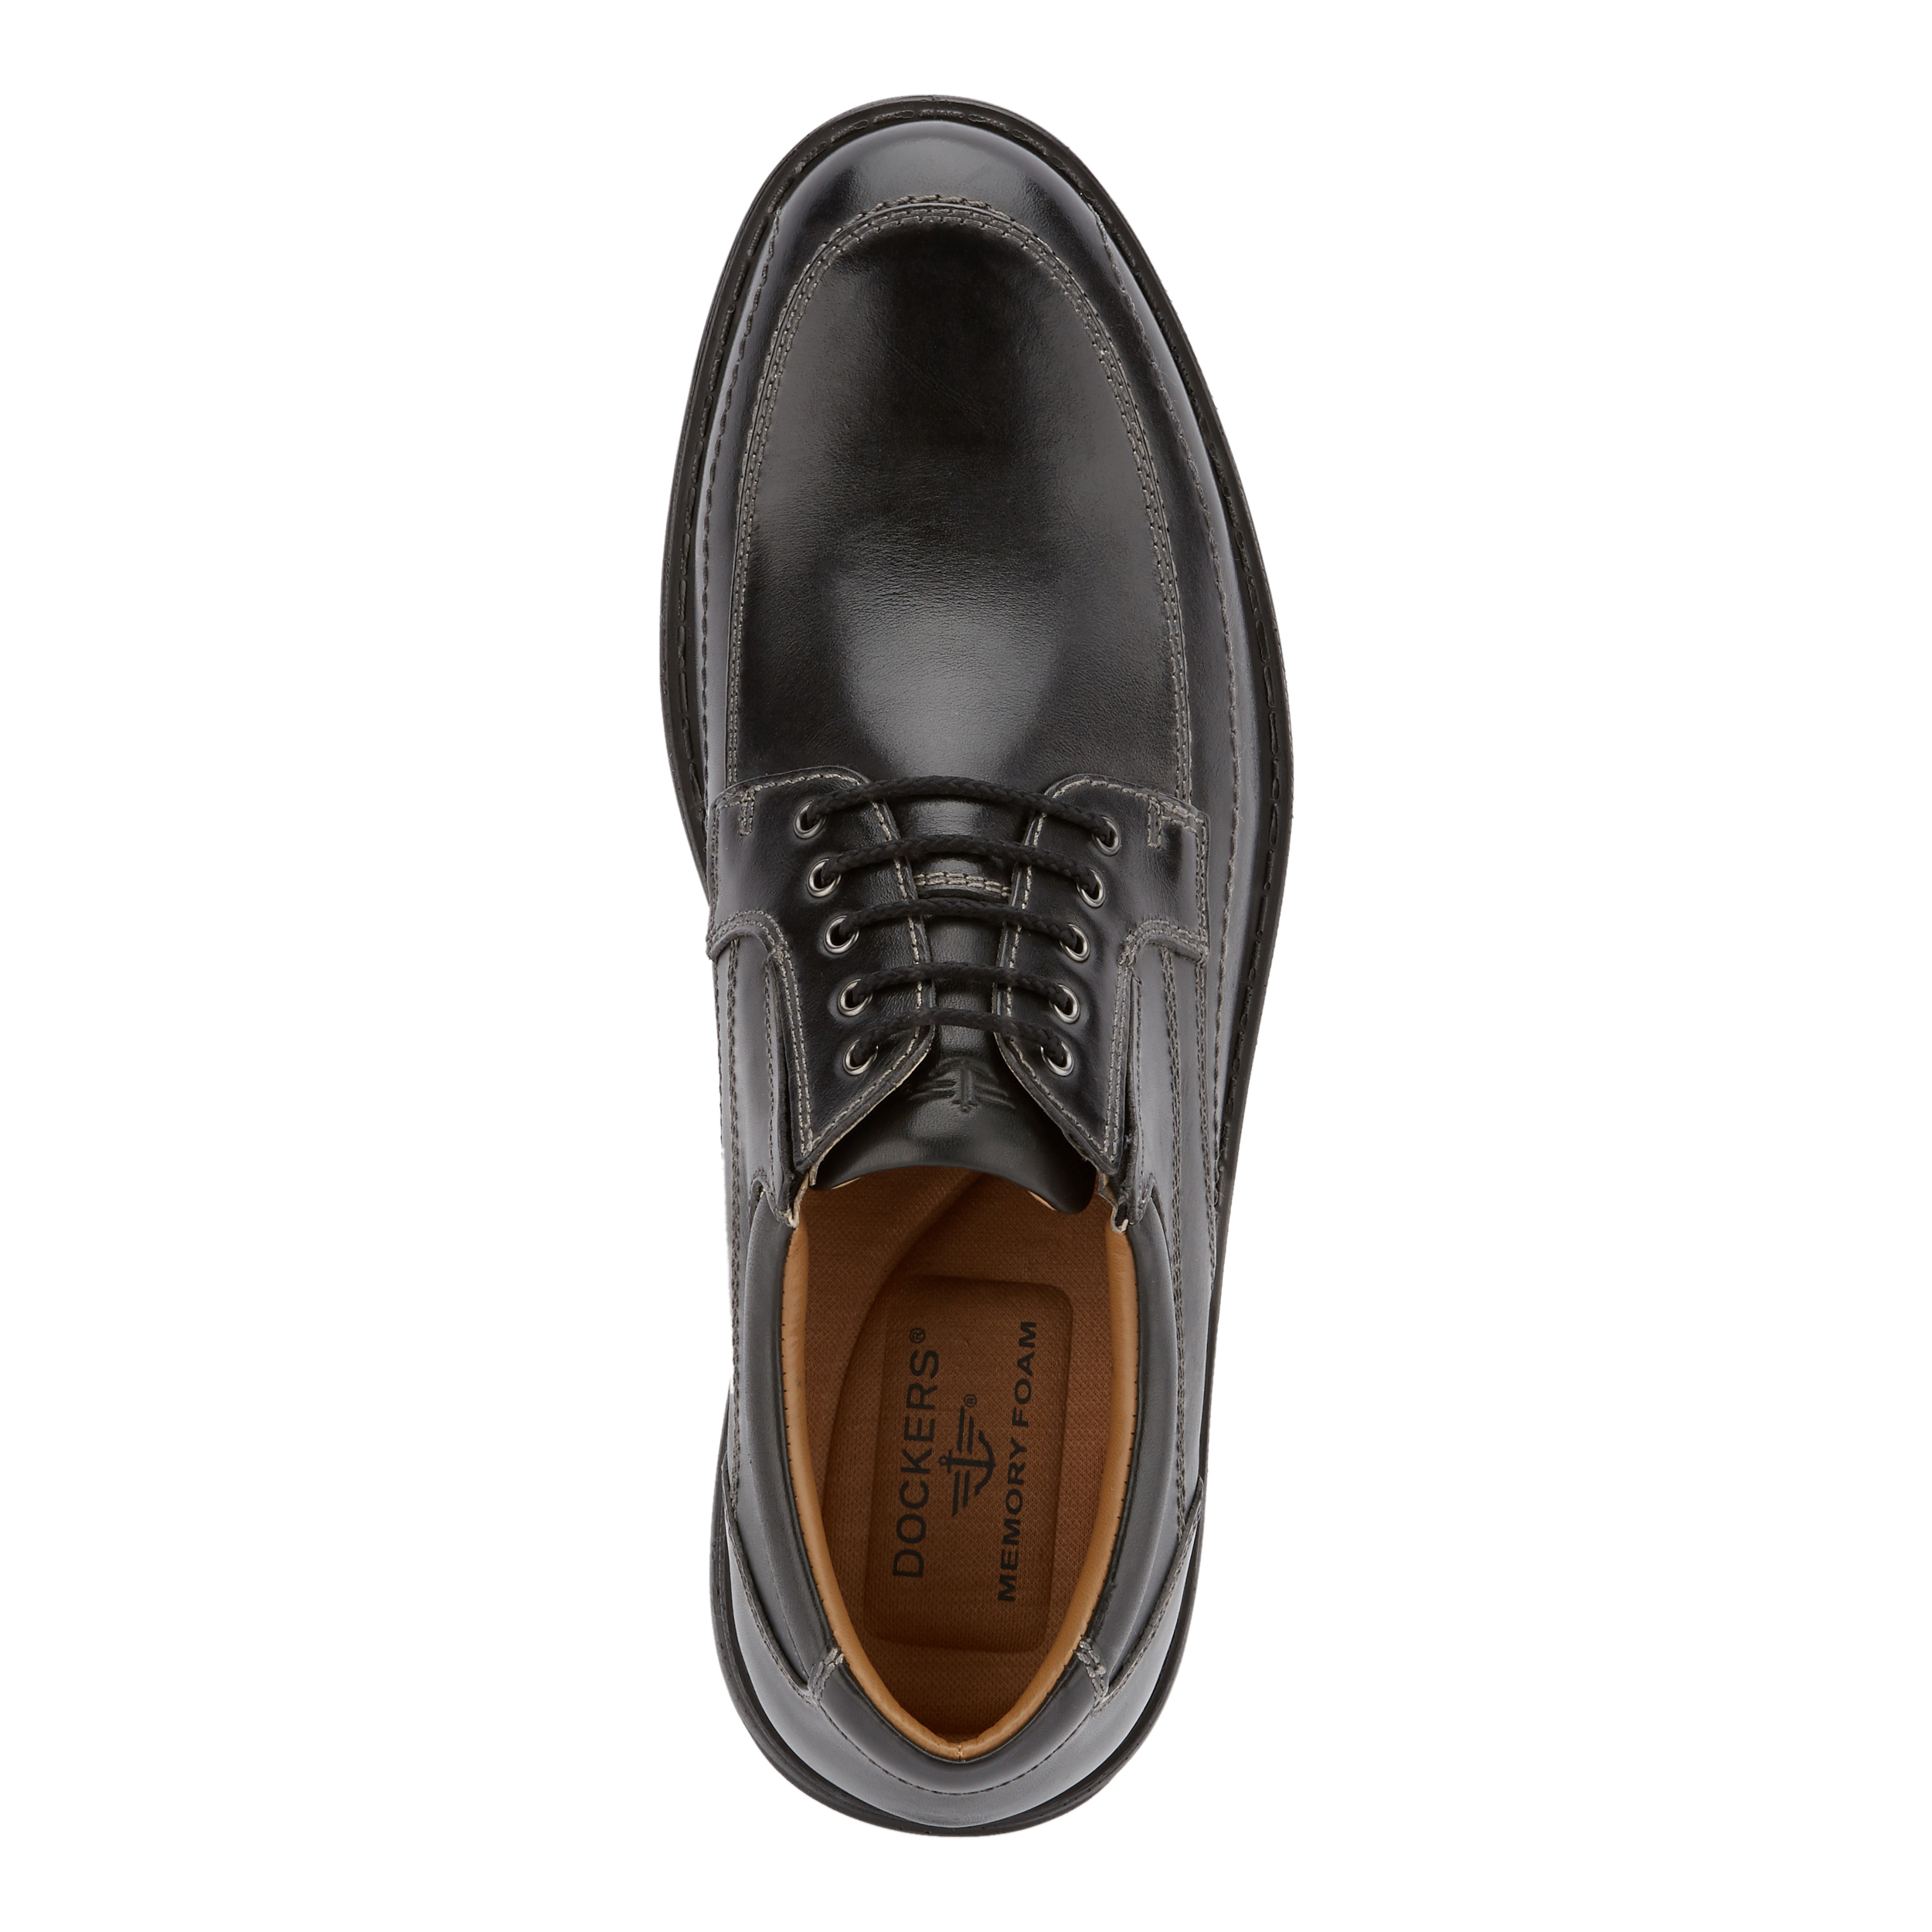 Dockers-Mens-Barker-Genuine-Leather-Dress-Casual-Lace-up-Comfort-Oxford-Shoe thumbnail 8